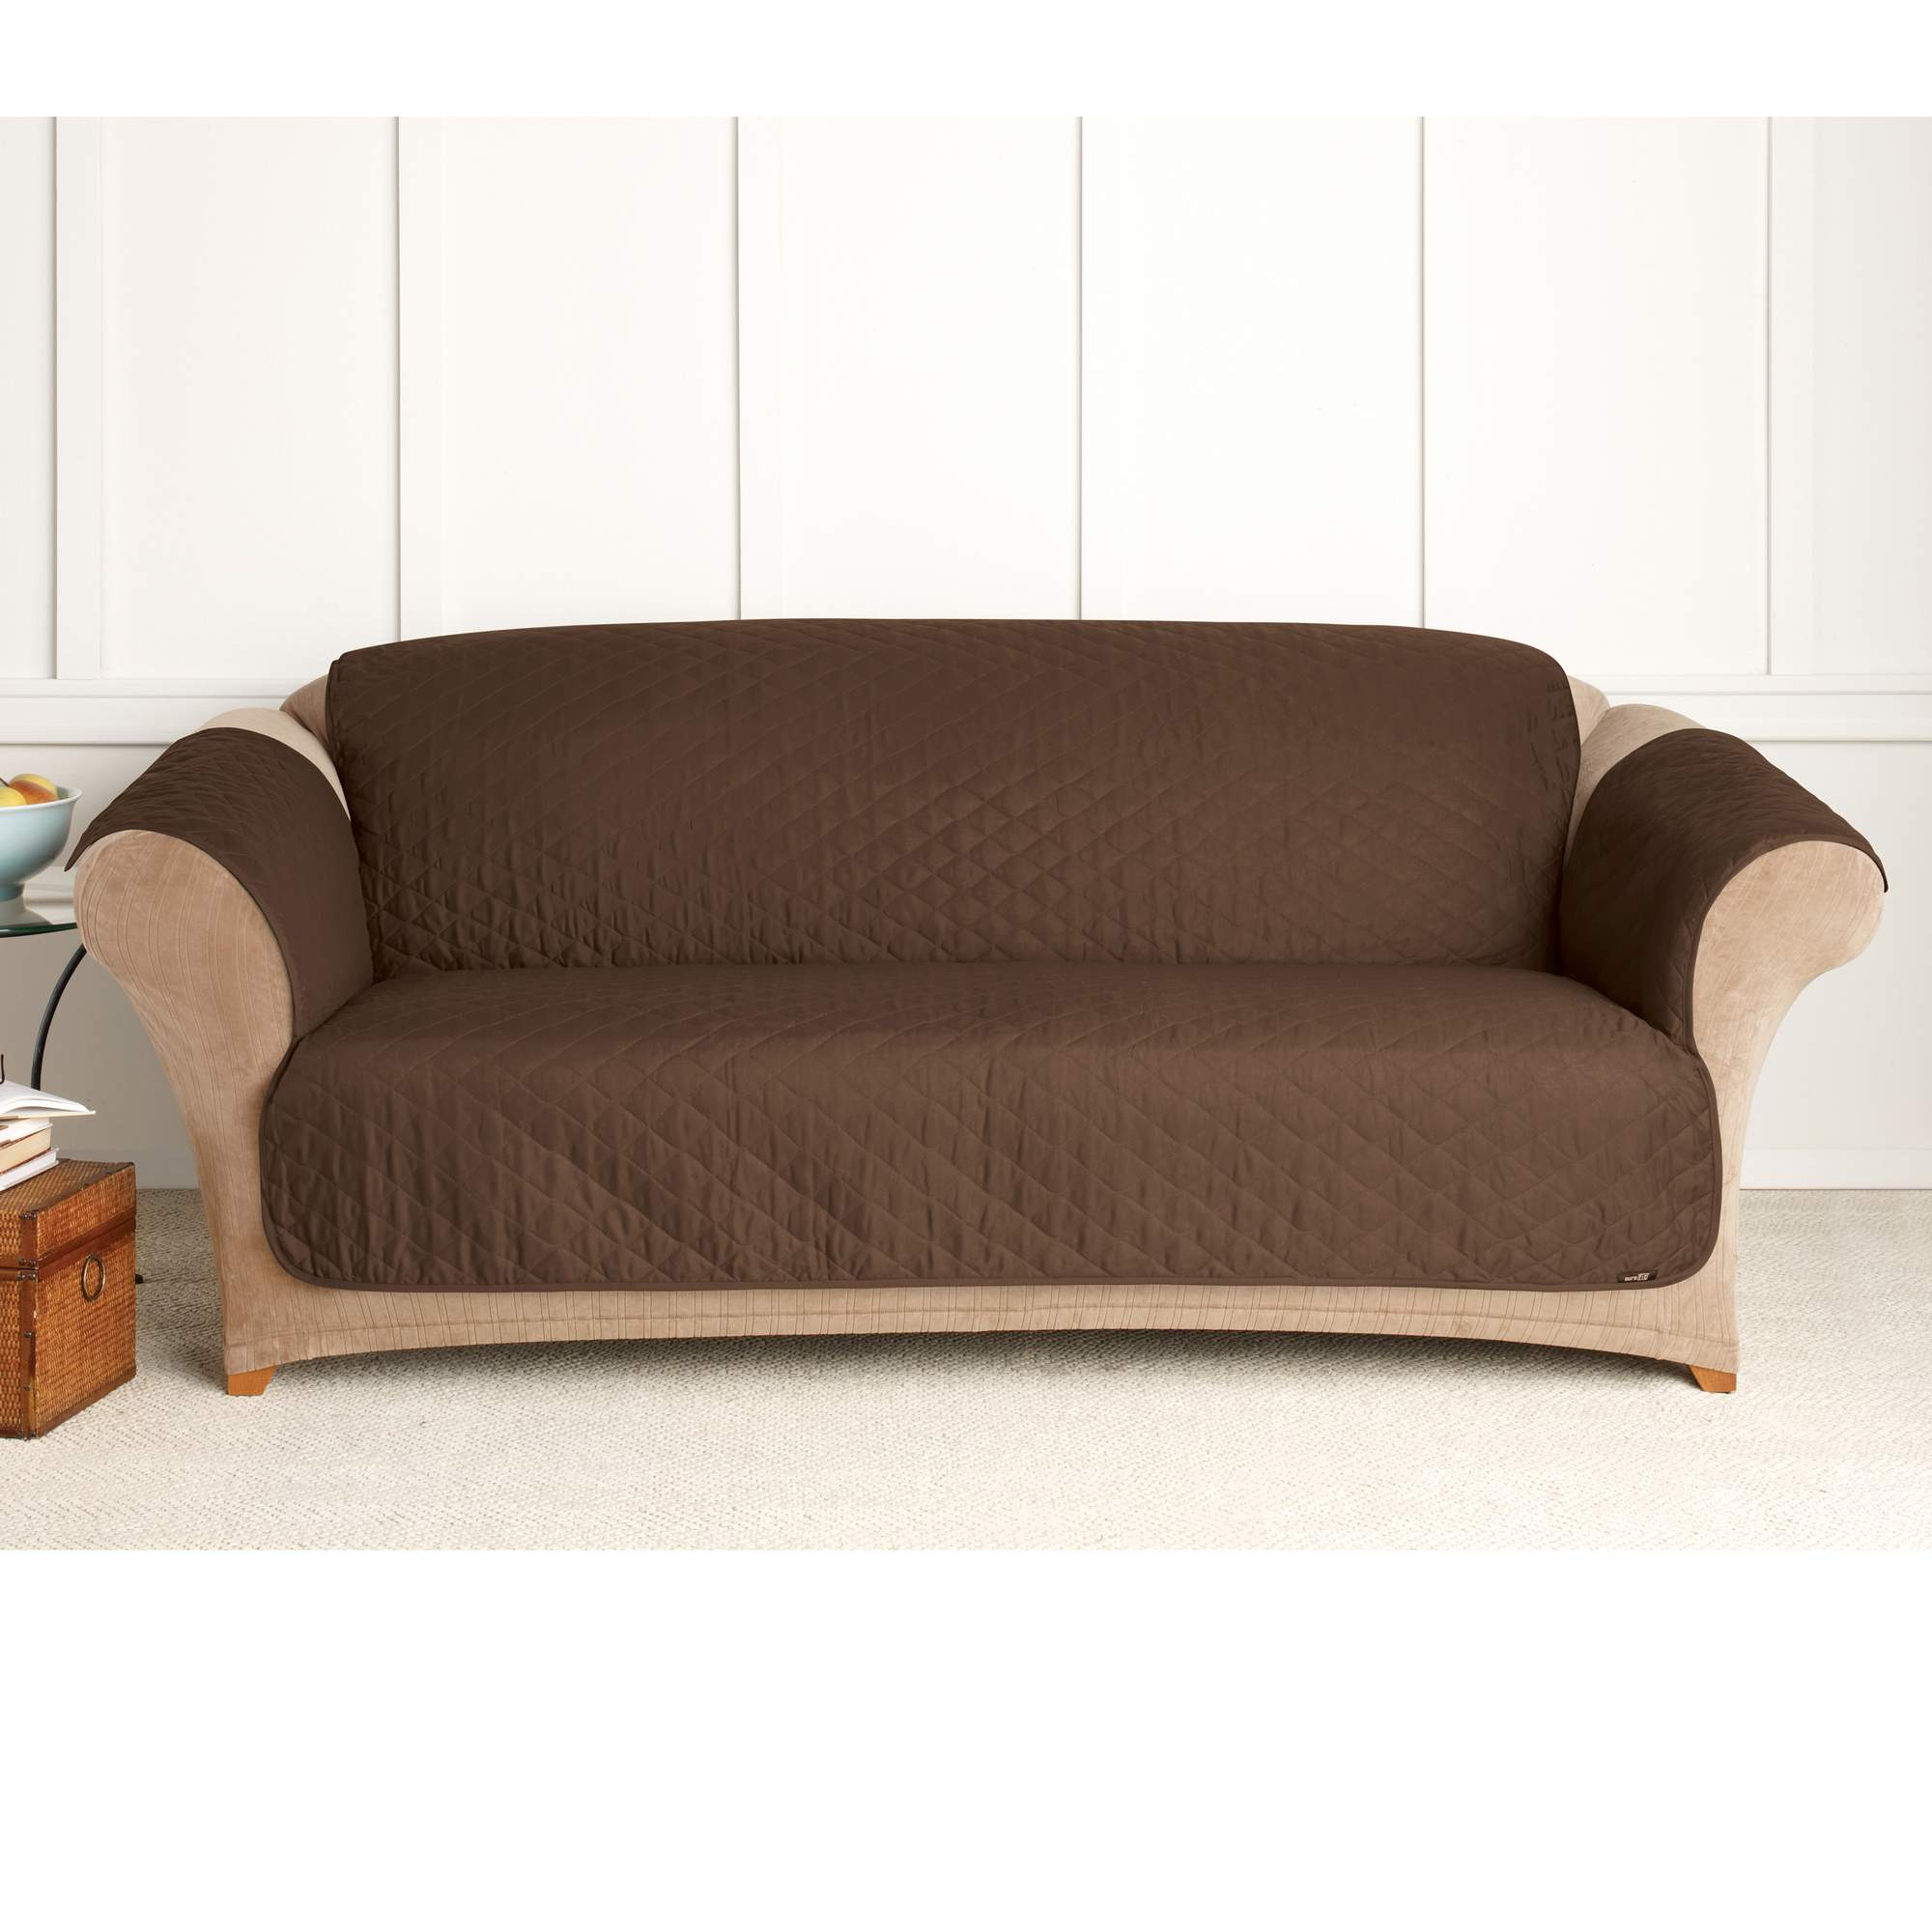 Sure Fit Furniture Friend Sofa Throw Cover